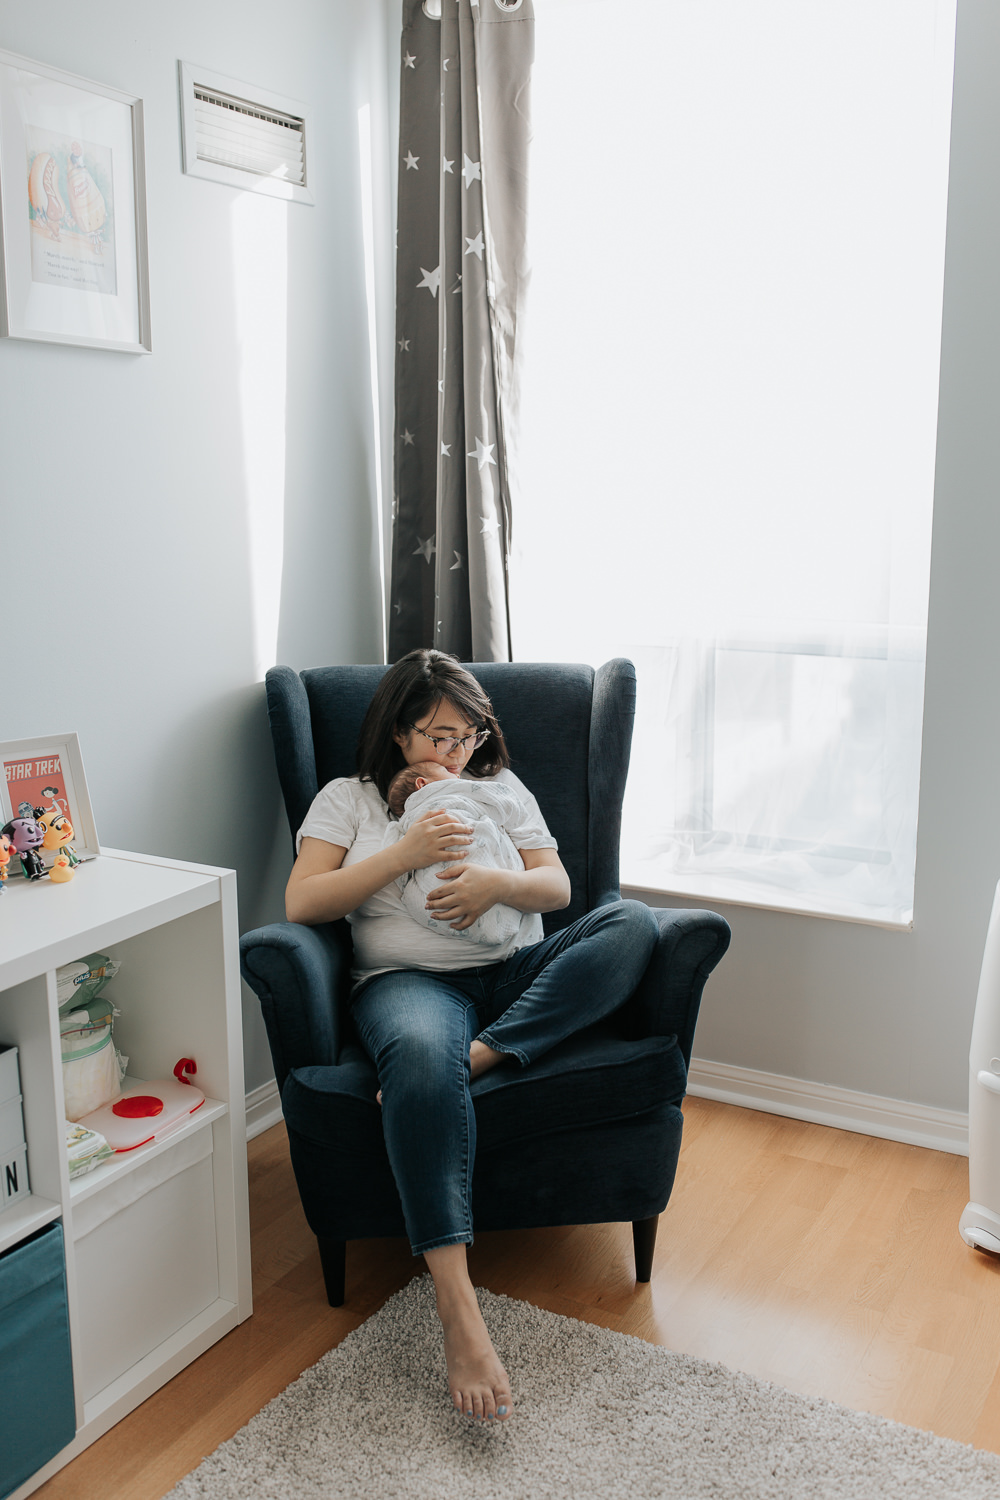 new mother with long dark hair wearing glasses  sitting in blue nursery chair with 2 week old baby boy in swaddle asleep on her chest, mom's cheek resting against top of son's head - York Region In-Home Photos